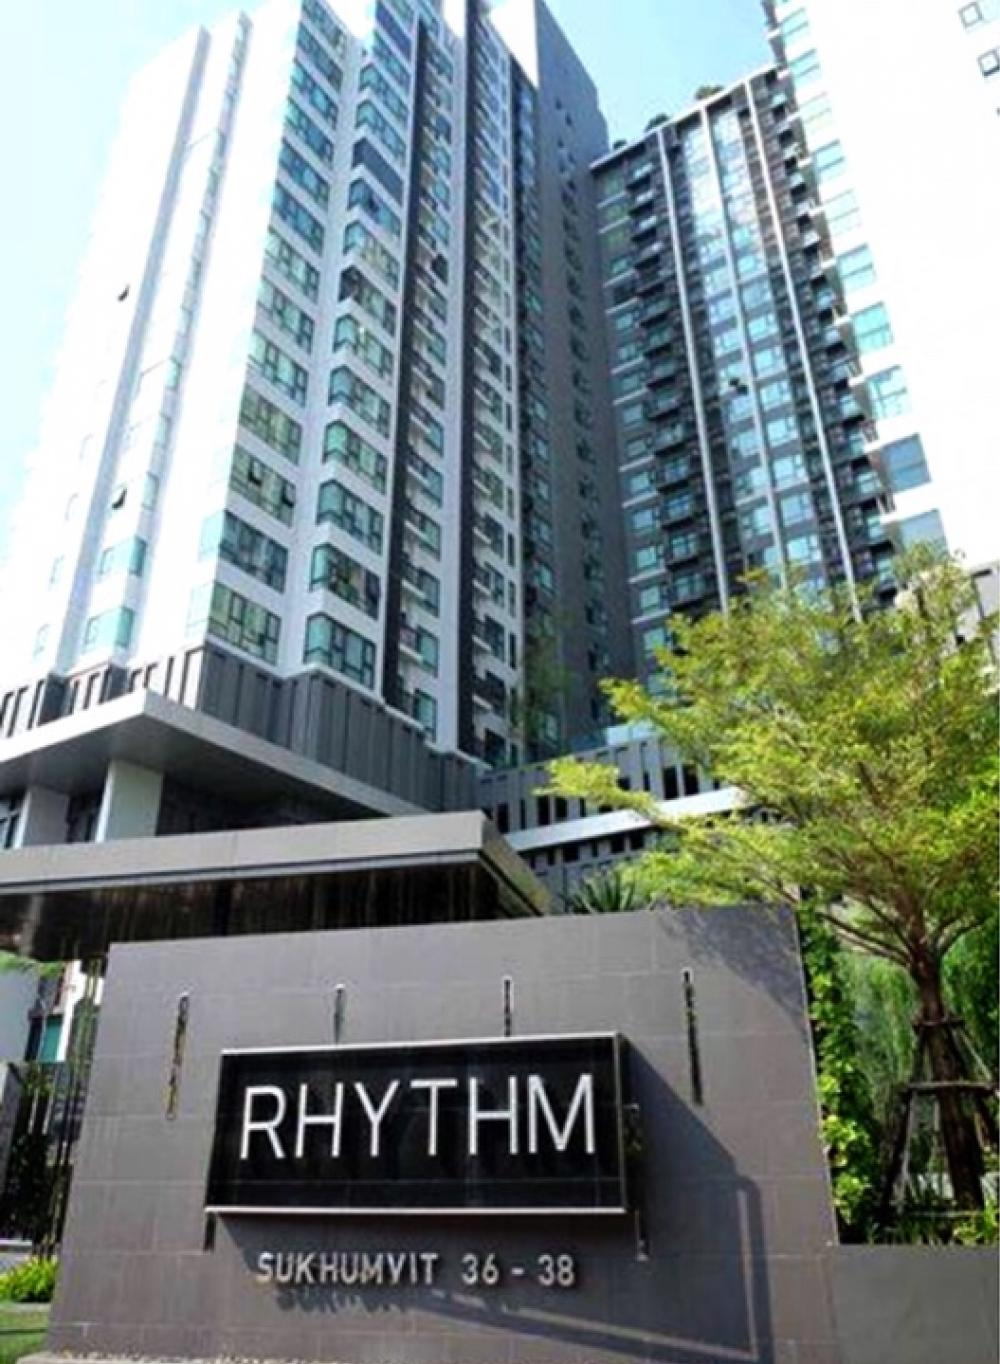 For SaleCondoSukhumvit, Asoke, Thonglor : Rhythm Suk 36-38🔥, super hot condo in Ekkamai area, good rent, rental fee 700-800 baht per square meter